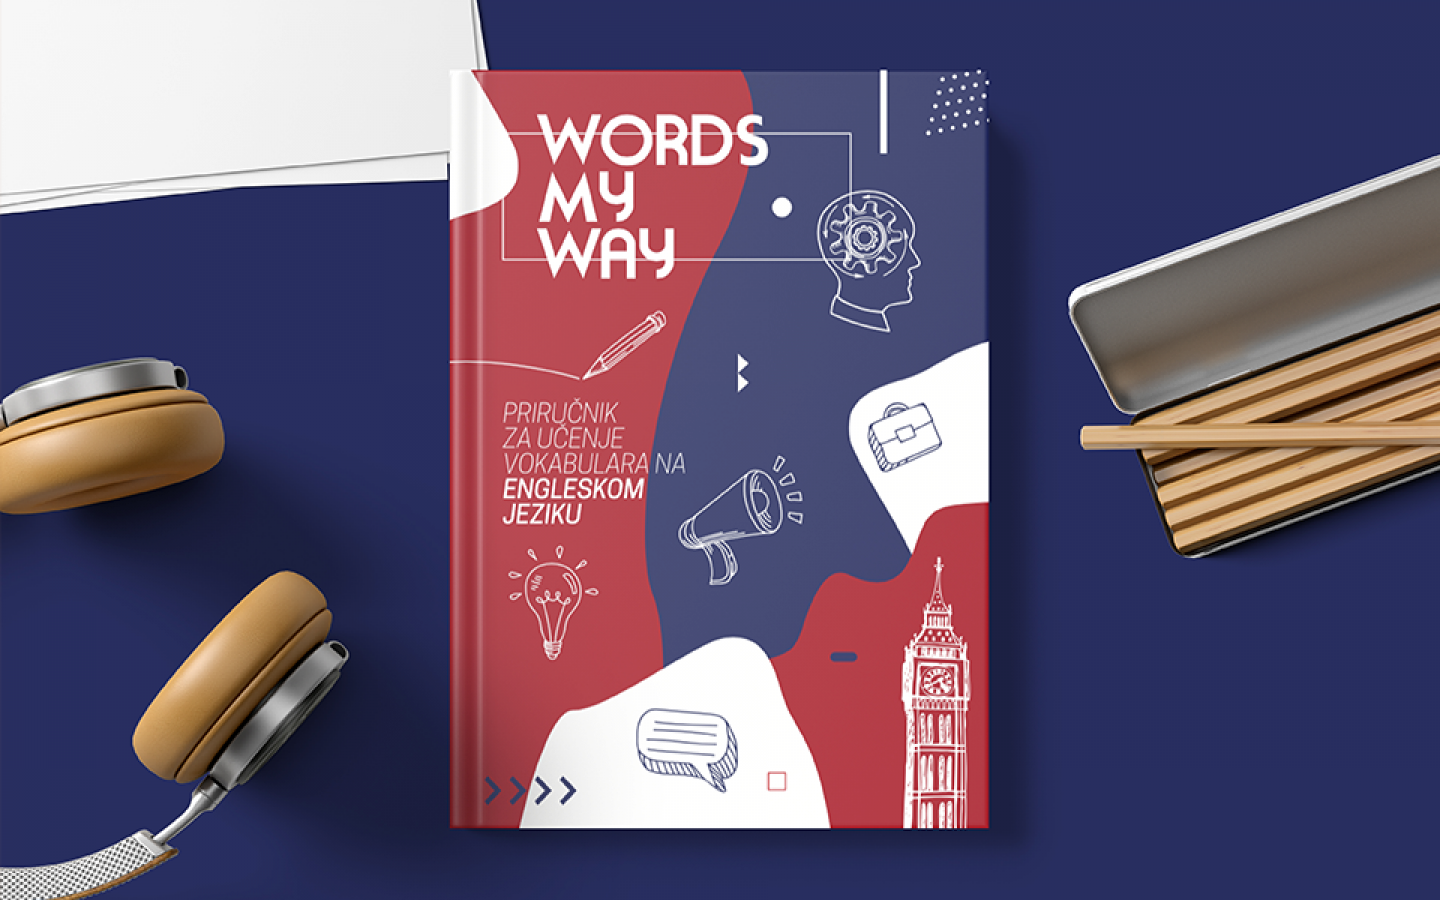 DICTIONARY PRODUCT DESIGN - WORDS MY WAY